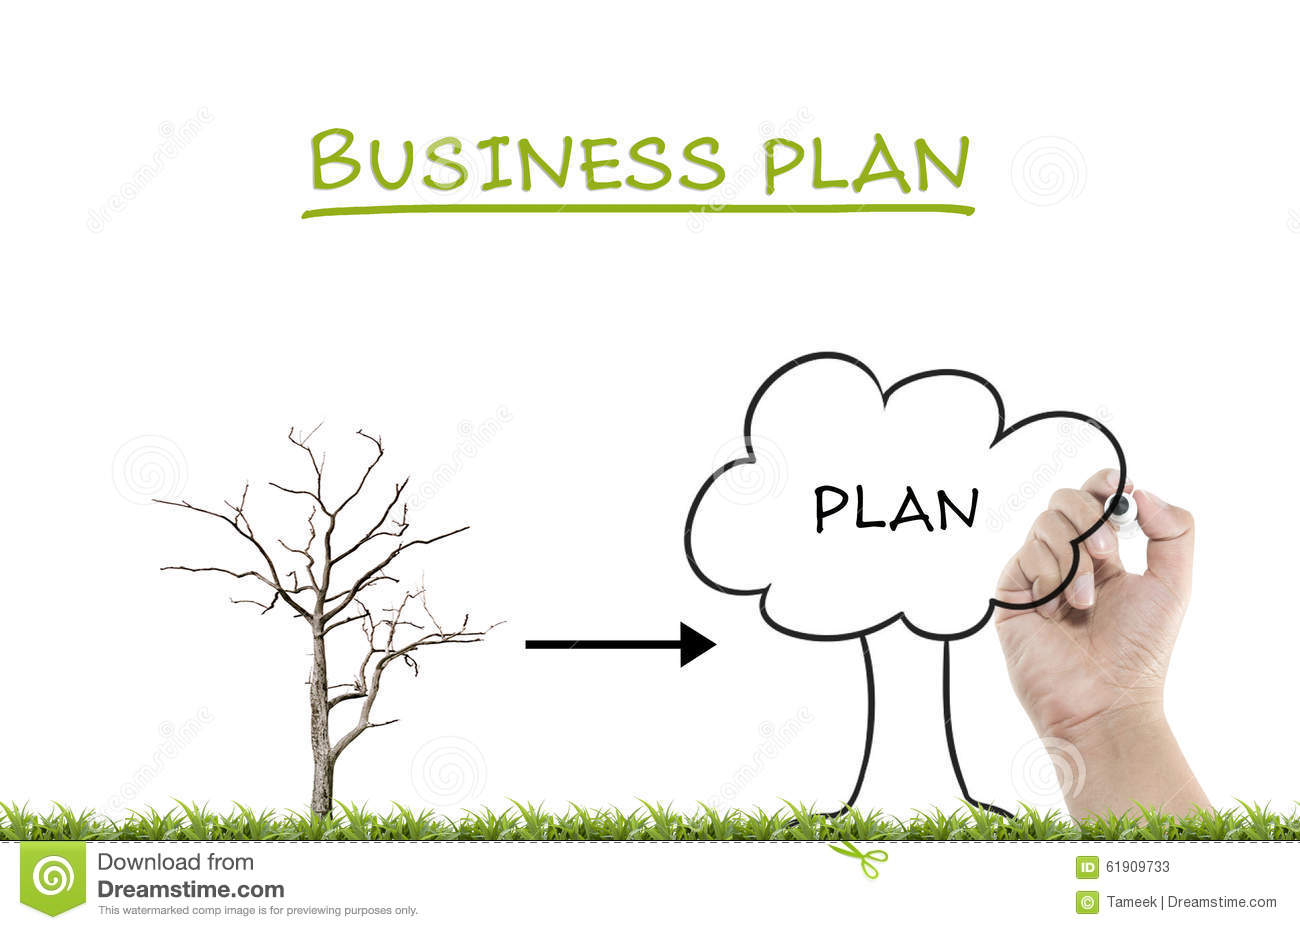 Professional business plan writing